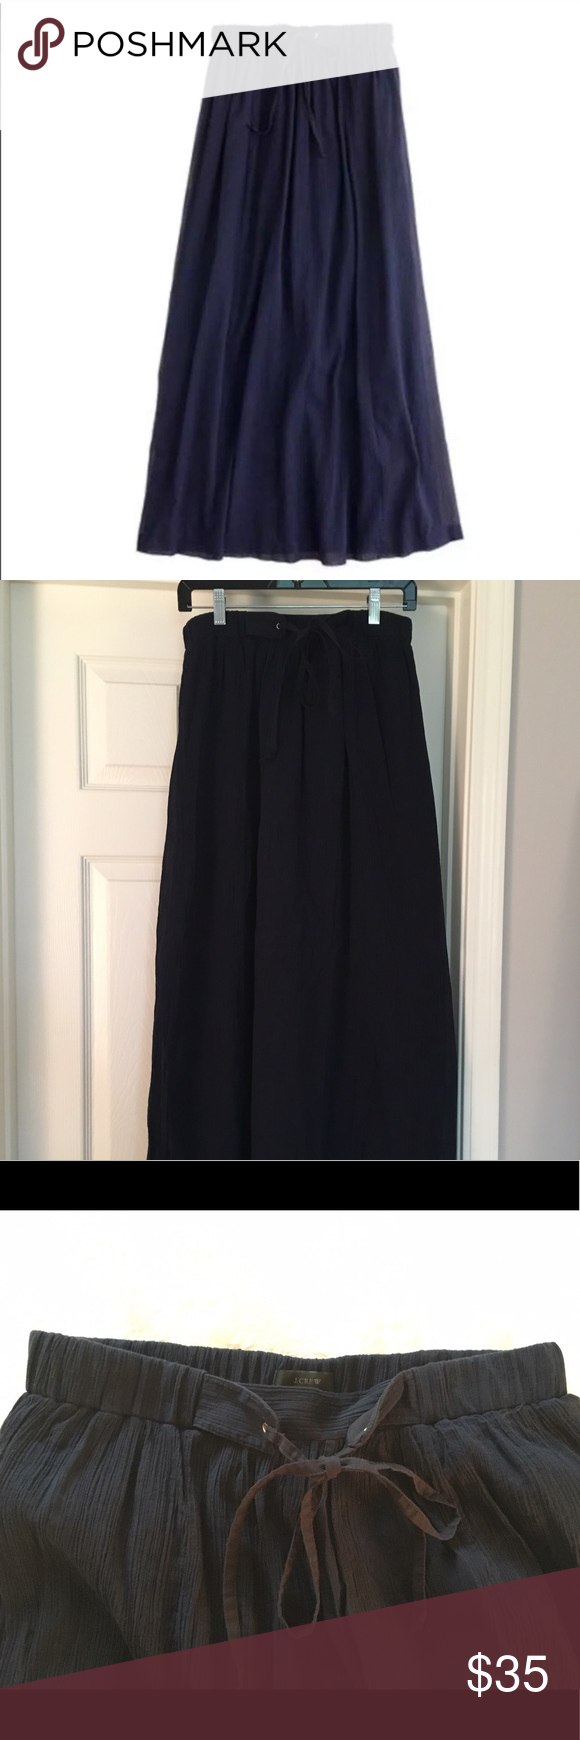 "J Crew navy gauze maxi skirt A beautiful lightweight maxi skirt, perfect for hot weather! Navy gauze/cotton material. Size small. Drawstring waist. 35 1/2"" long, falls to the floor. J. Crew Skirts Maxi"